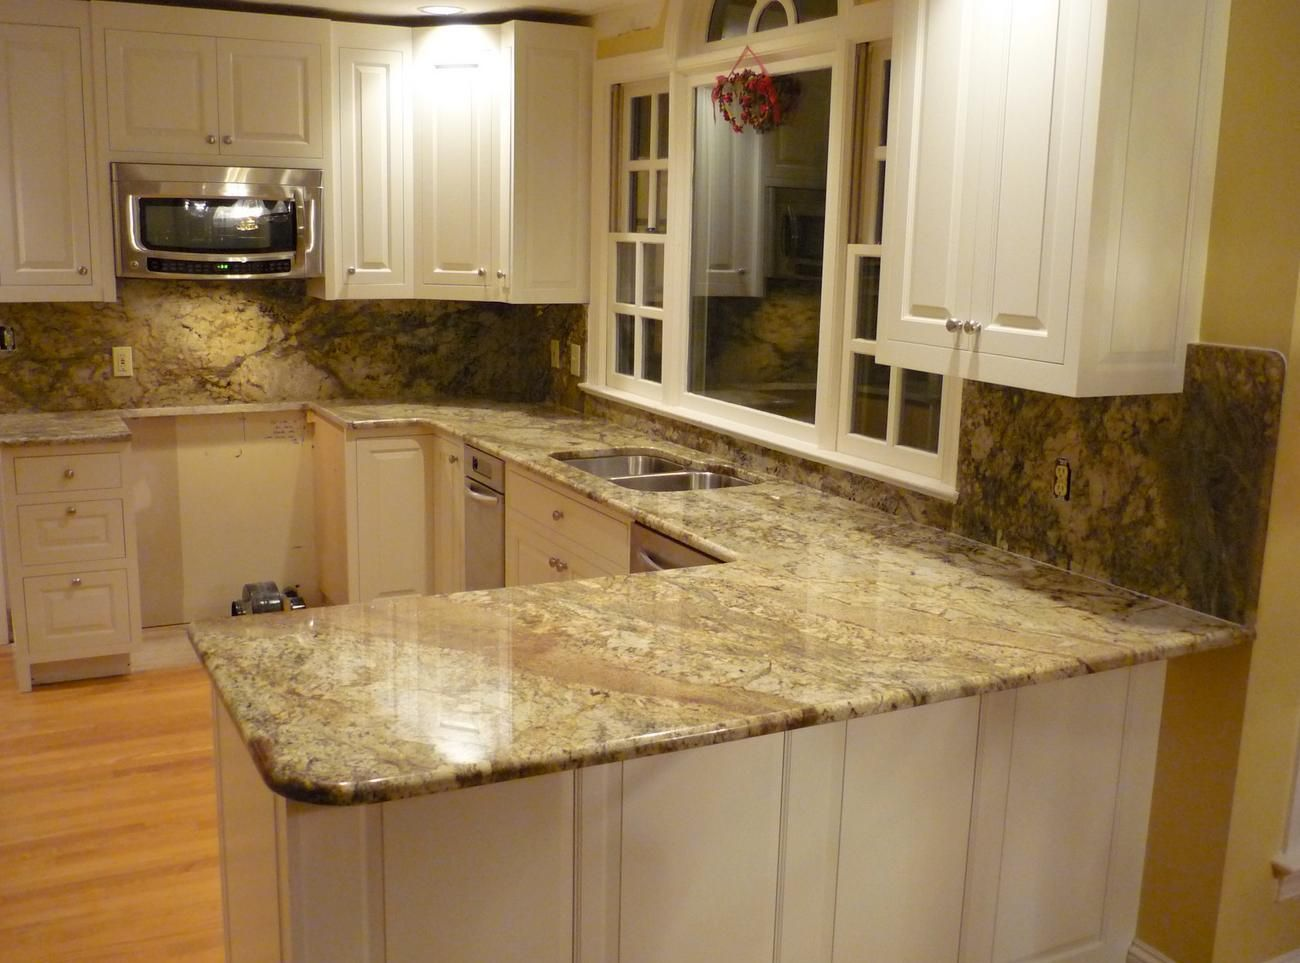 Lowes Kitchen Countertops Laminate Faucets Oil Rubbed Bronze That Look Like Granite Cooking